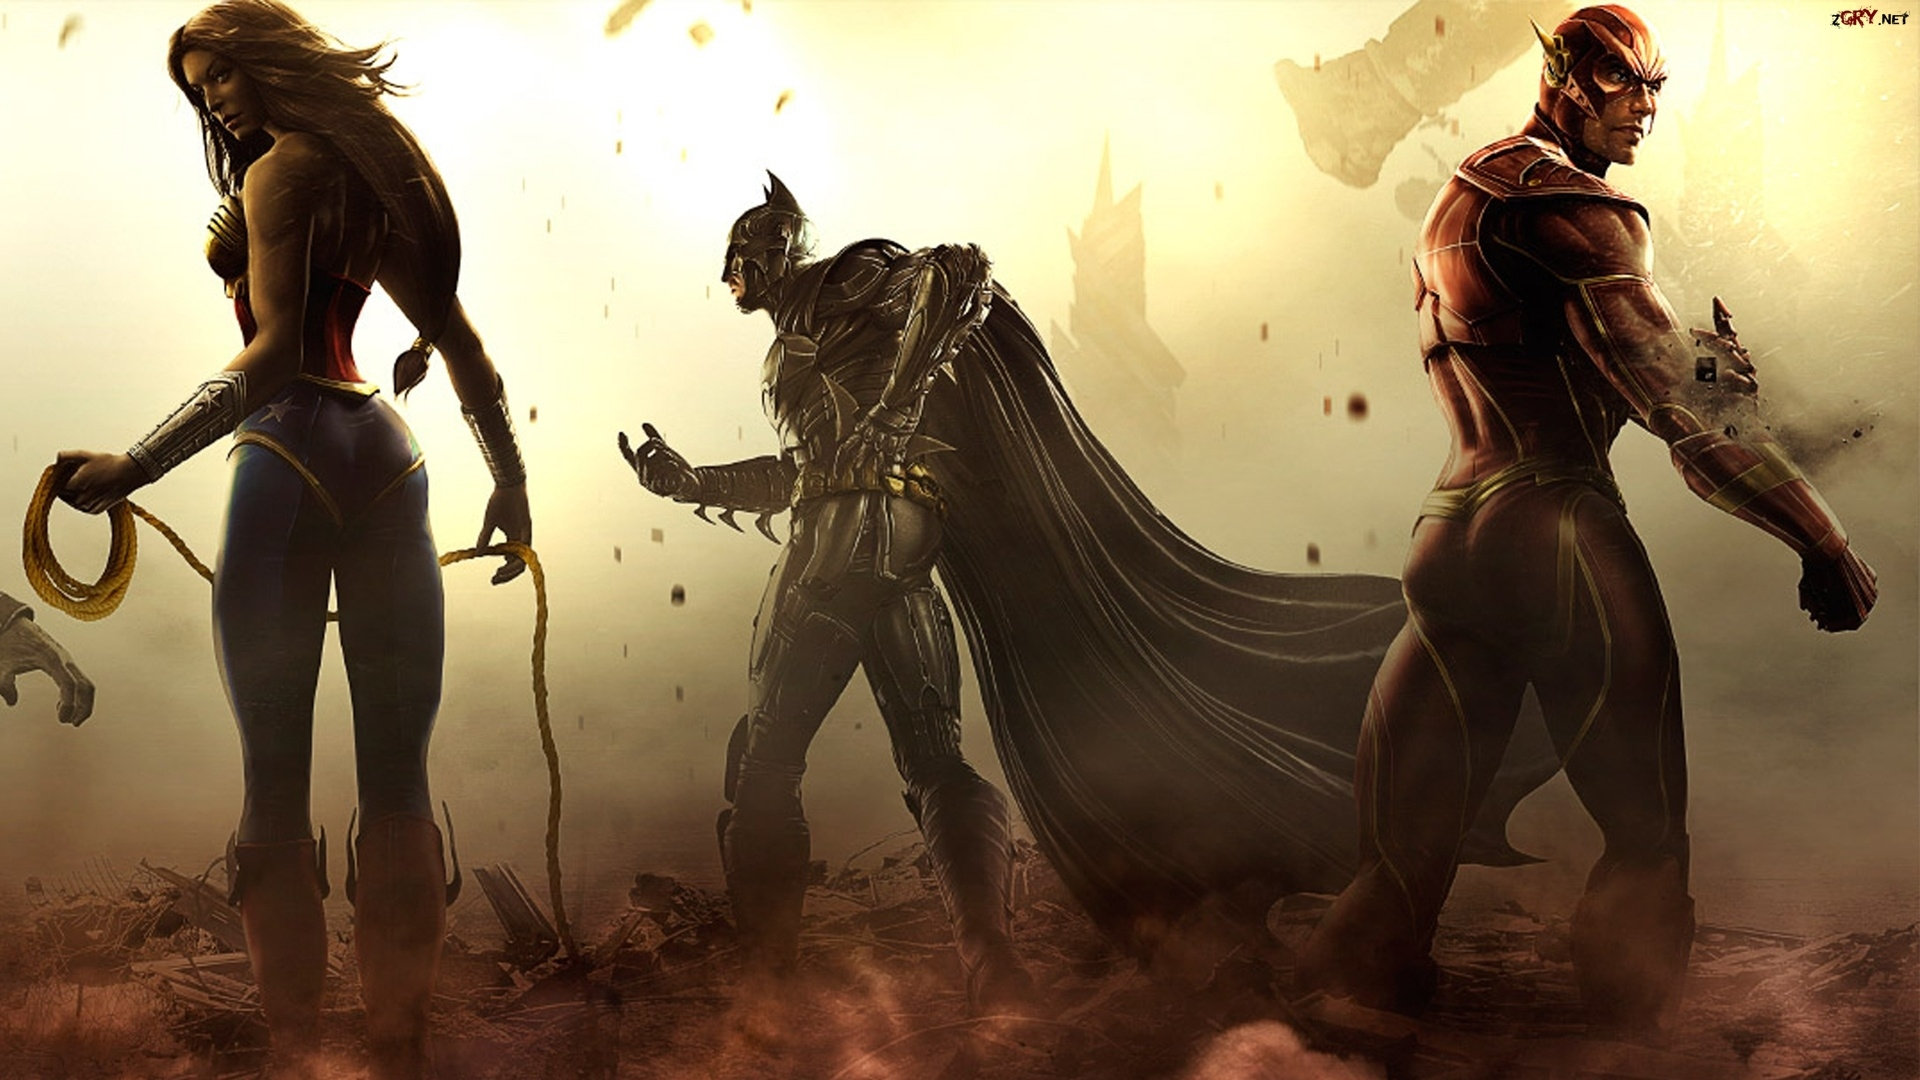 Injustice Gods Among Us, Wonder Woman, Batman, Flash